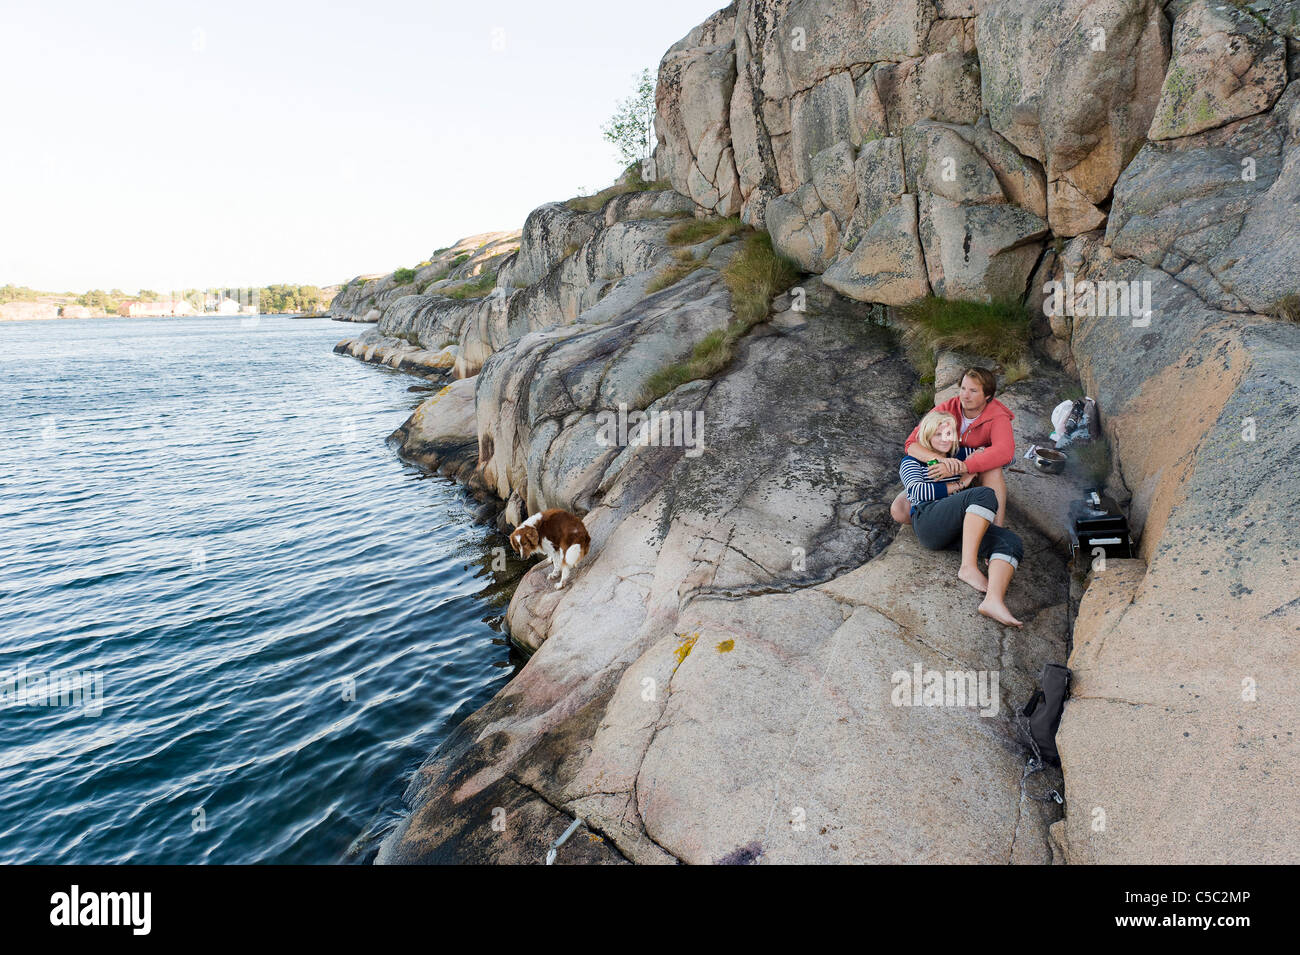 Romantic and relaxed teenage boy and girl on the rock by the peaceful sea - Stock Image